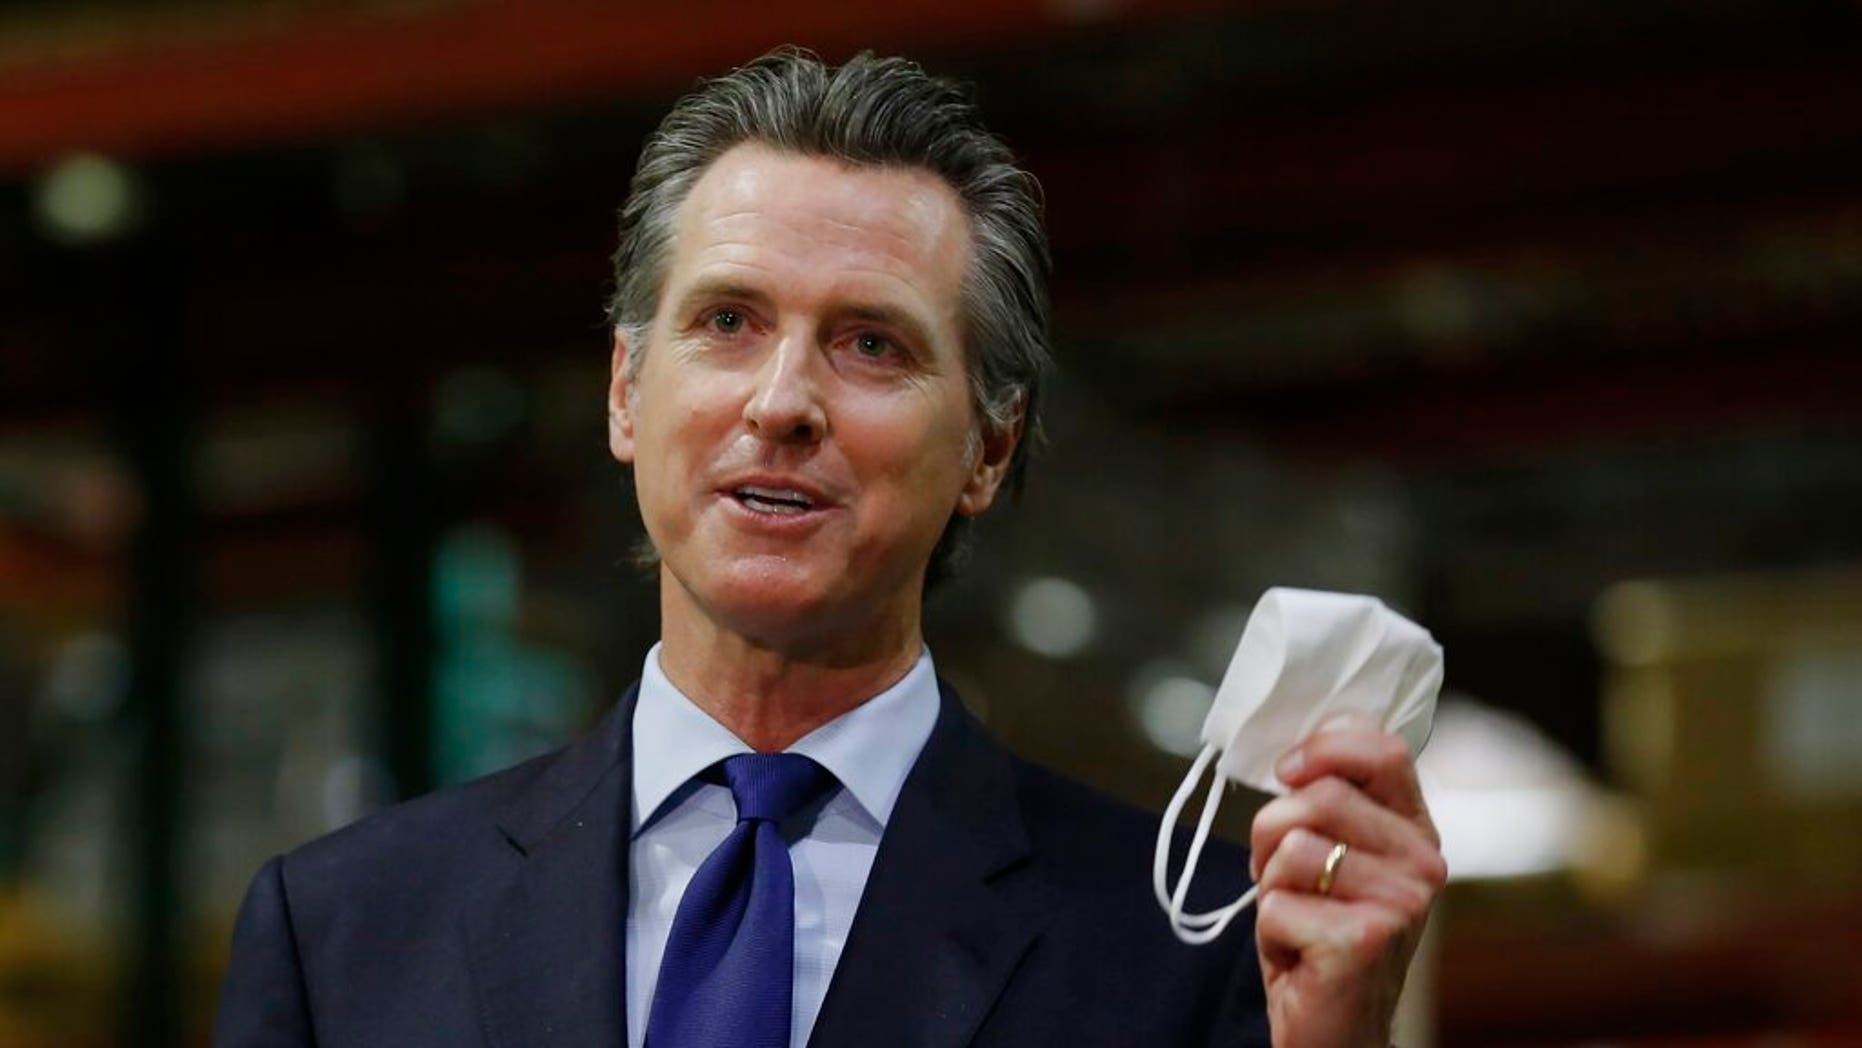 California Republicans rip Newsom's 'hypocrisy' after governor caught dining out amid pandemic